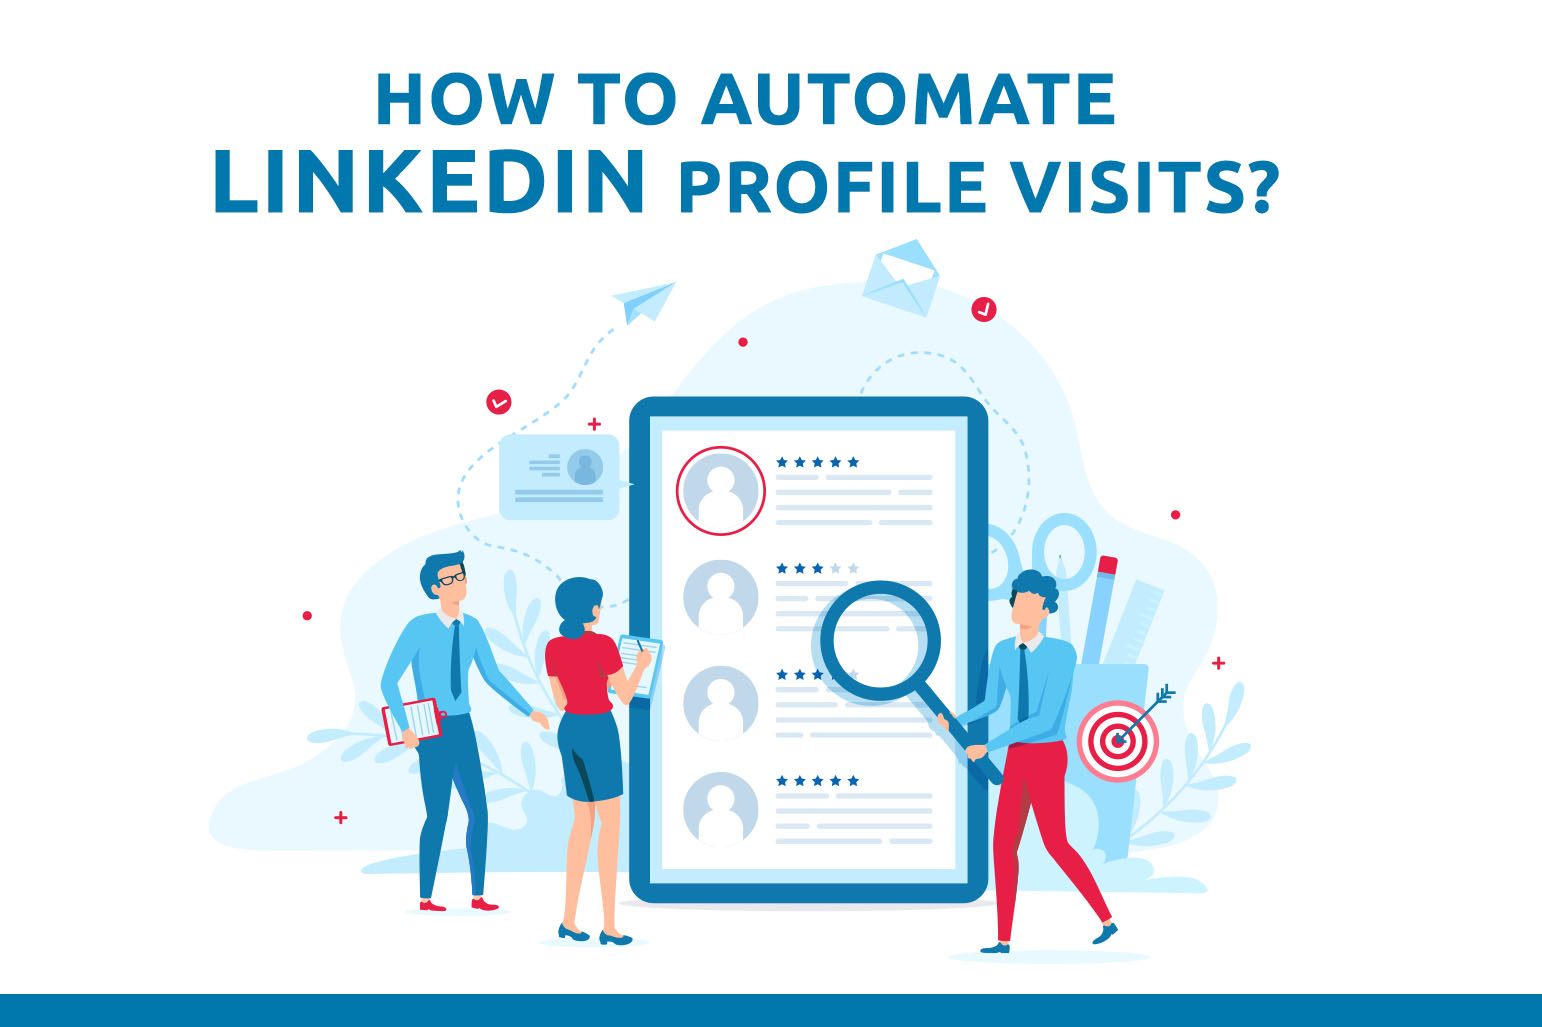 Como automatizar as visitas de perfil do LinkedIn